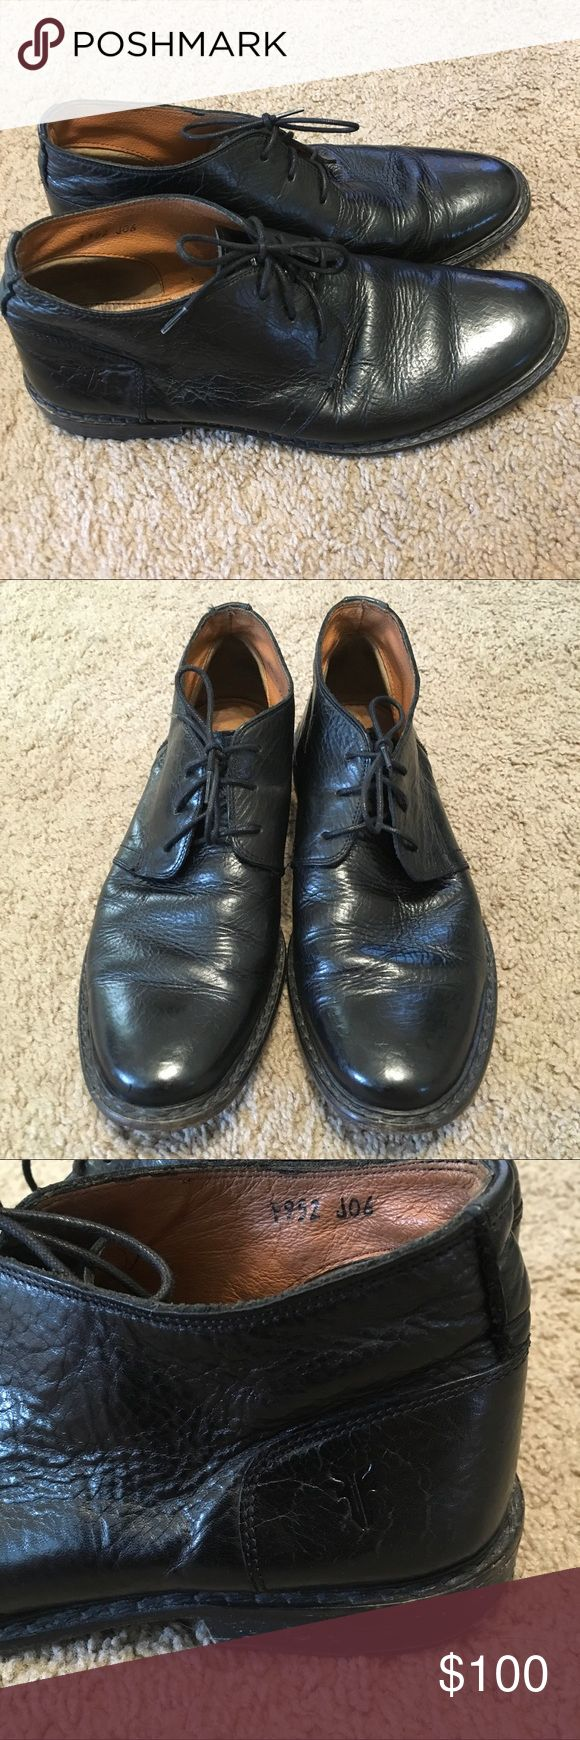 Frye Men's Chukka Boots Black Leather Frye Men's Chukka Boots Black Leather. Excellent Condition. Very Soft Leather Frye Shoes Chukka Boots